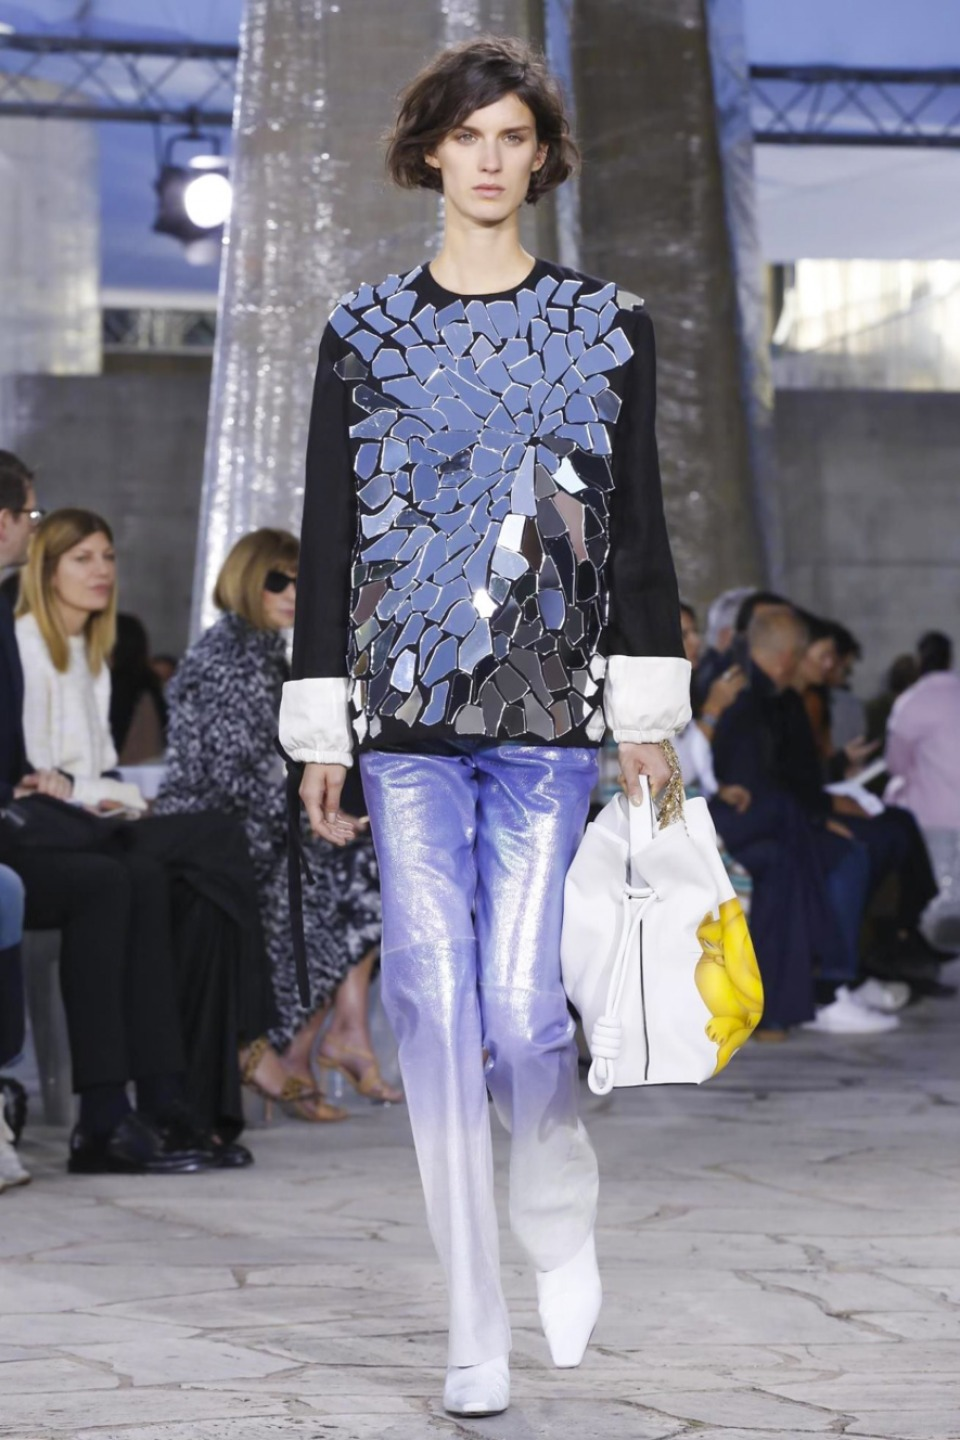 6d9088821d Loewe Spring/Summer 2016 ready-to-wear collection – Paris Fashion ...